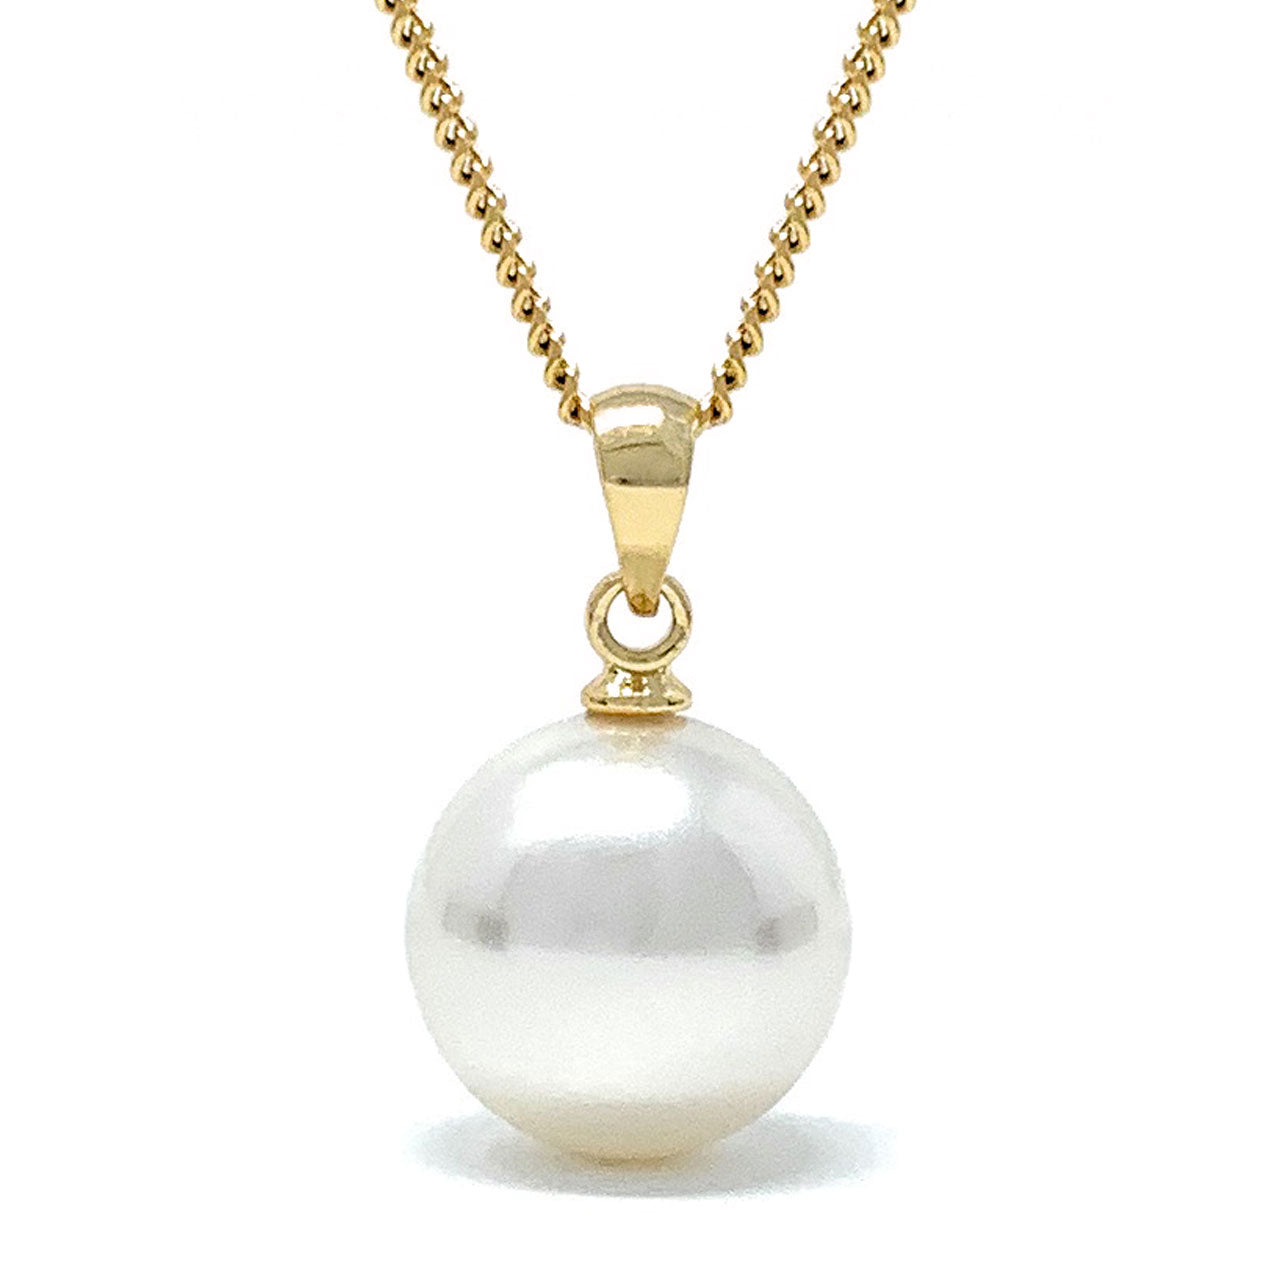 Elizabeth Pendant Necklace with Ivory White Round Pearls from Swarovski Gold Plated - Ed Heart